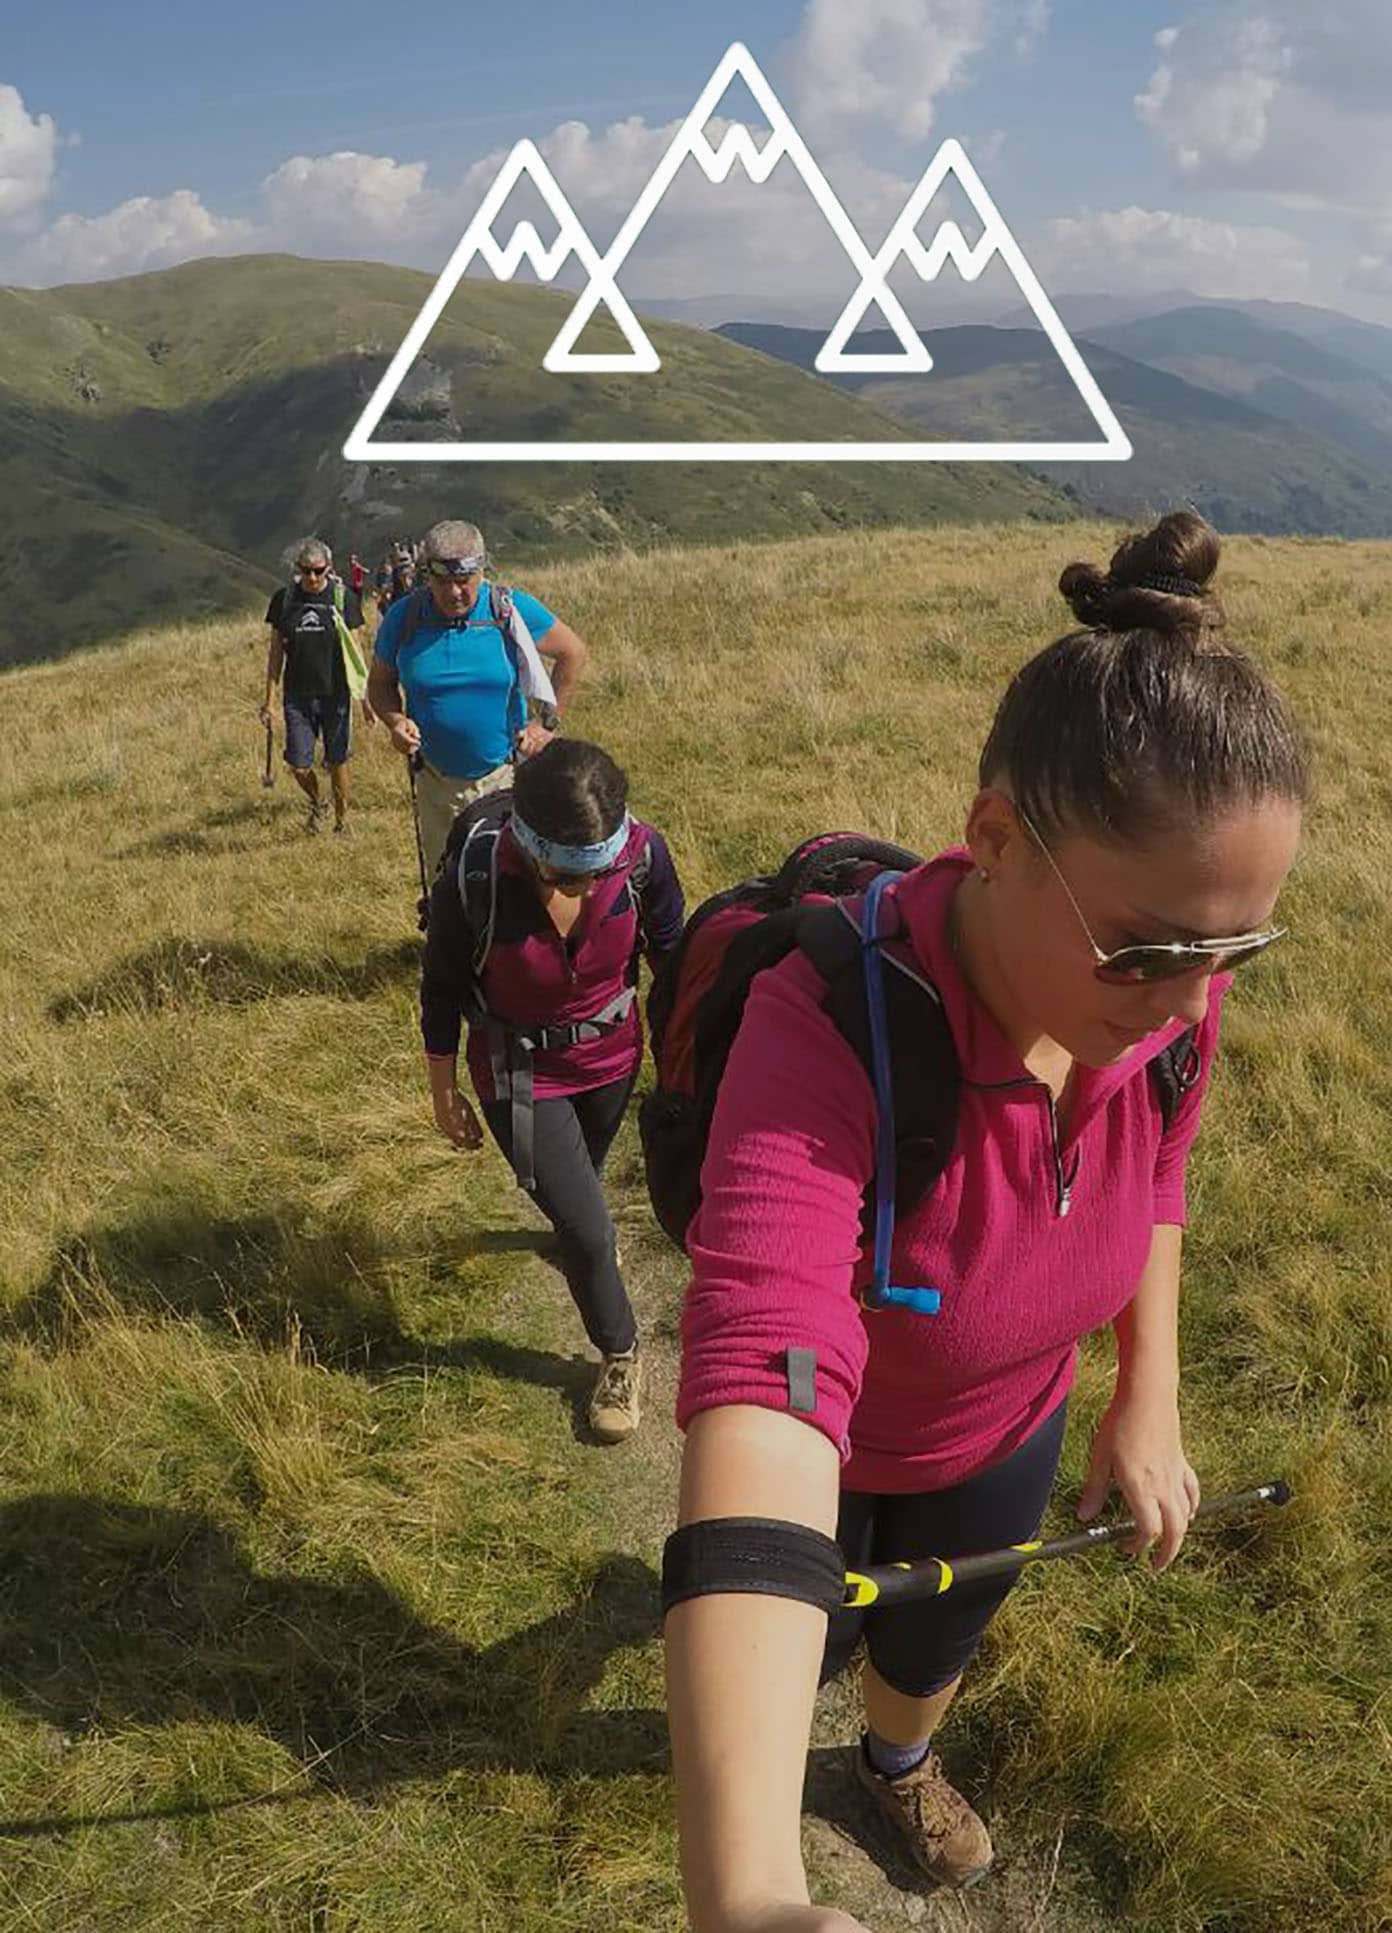 The Best Hiking Tips To Get Fit On The Trail - Hiking For BeginnersThe Best Hiking Tips To Get Fit On The Trail - Hiking For Beginners 2